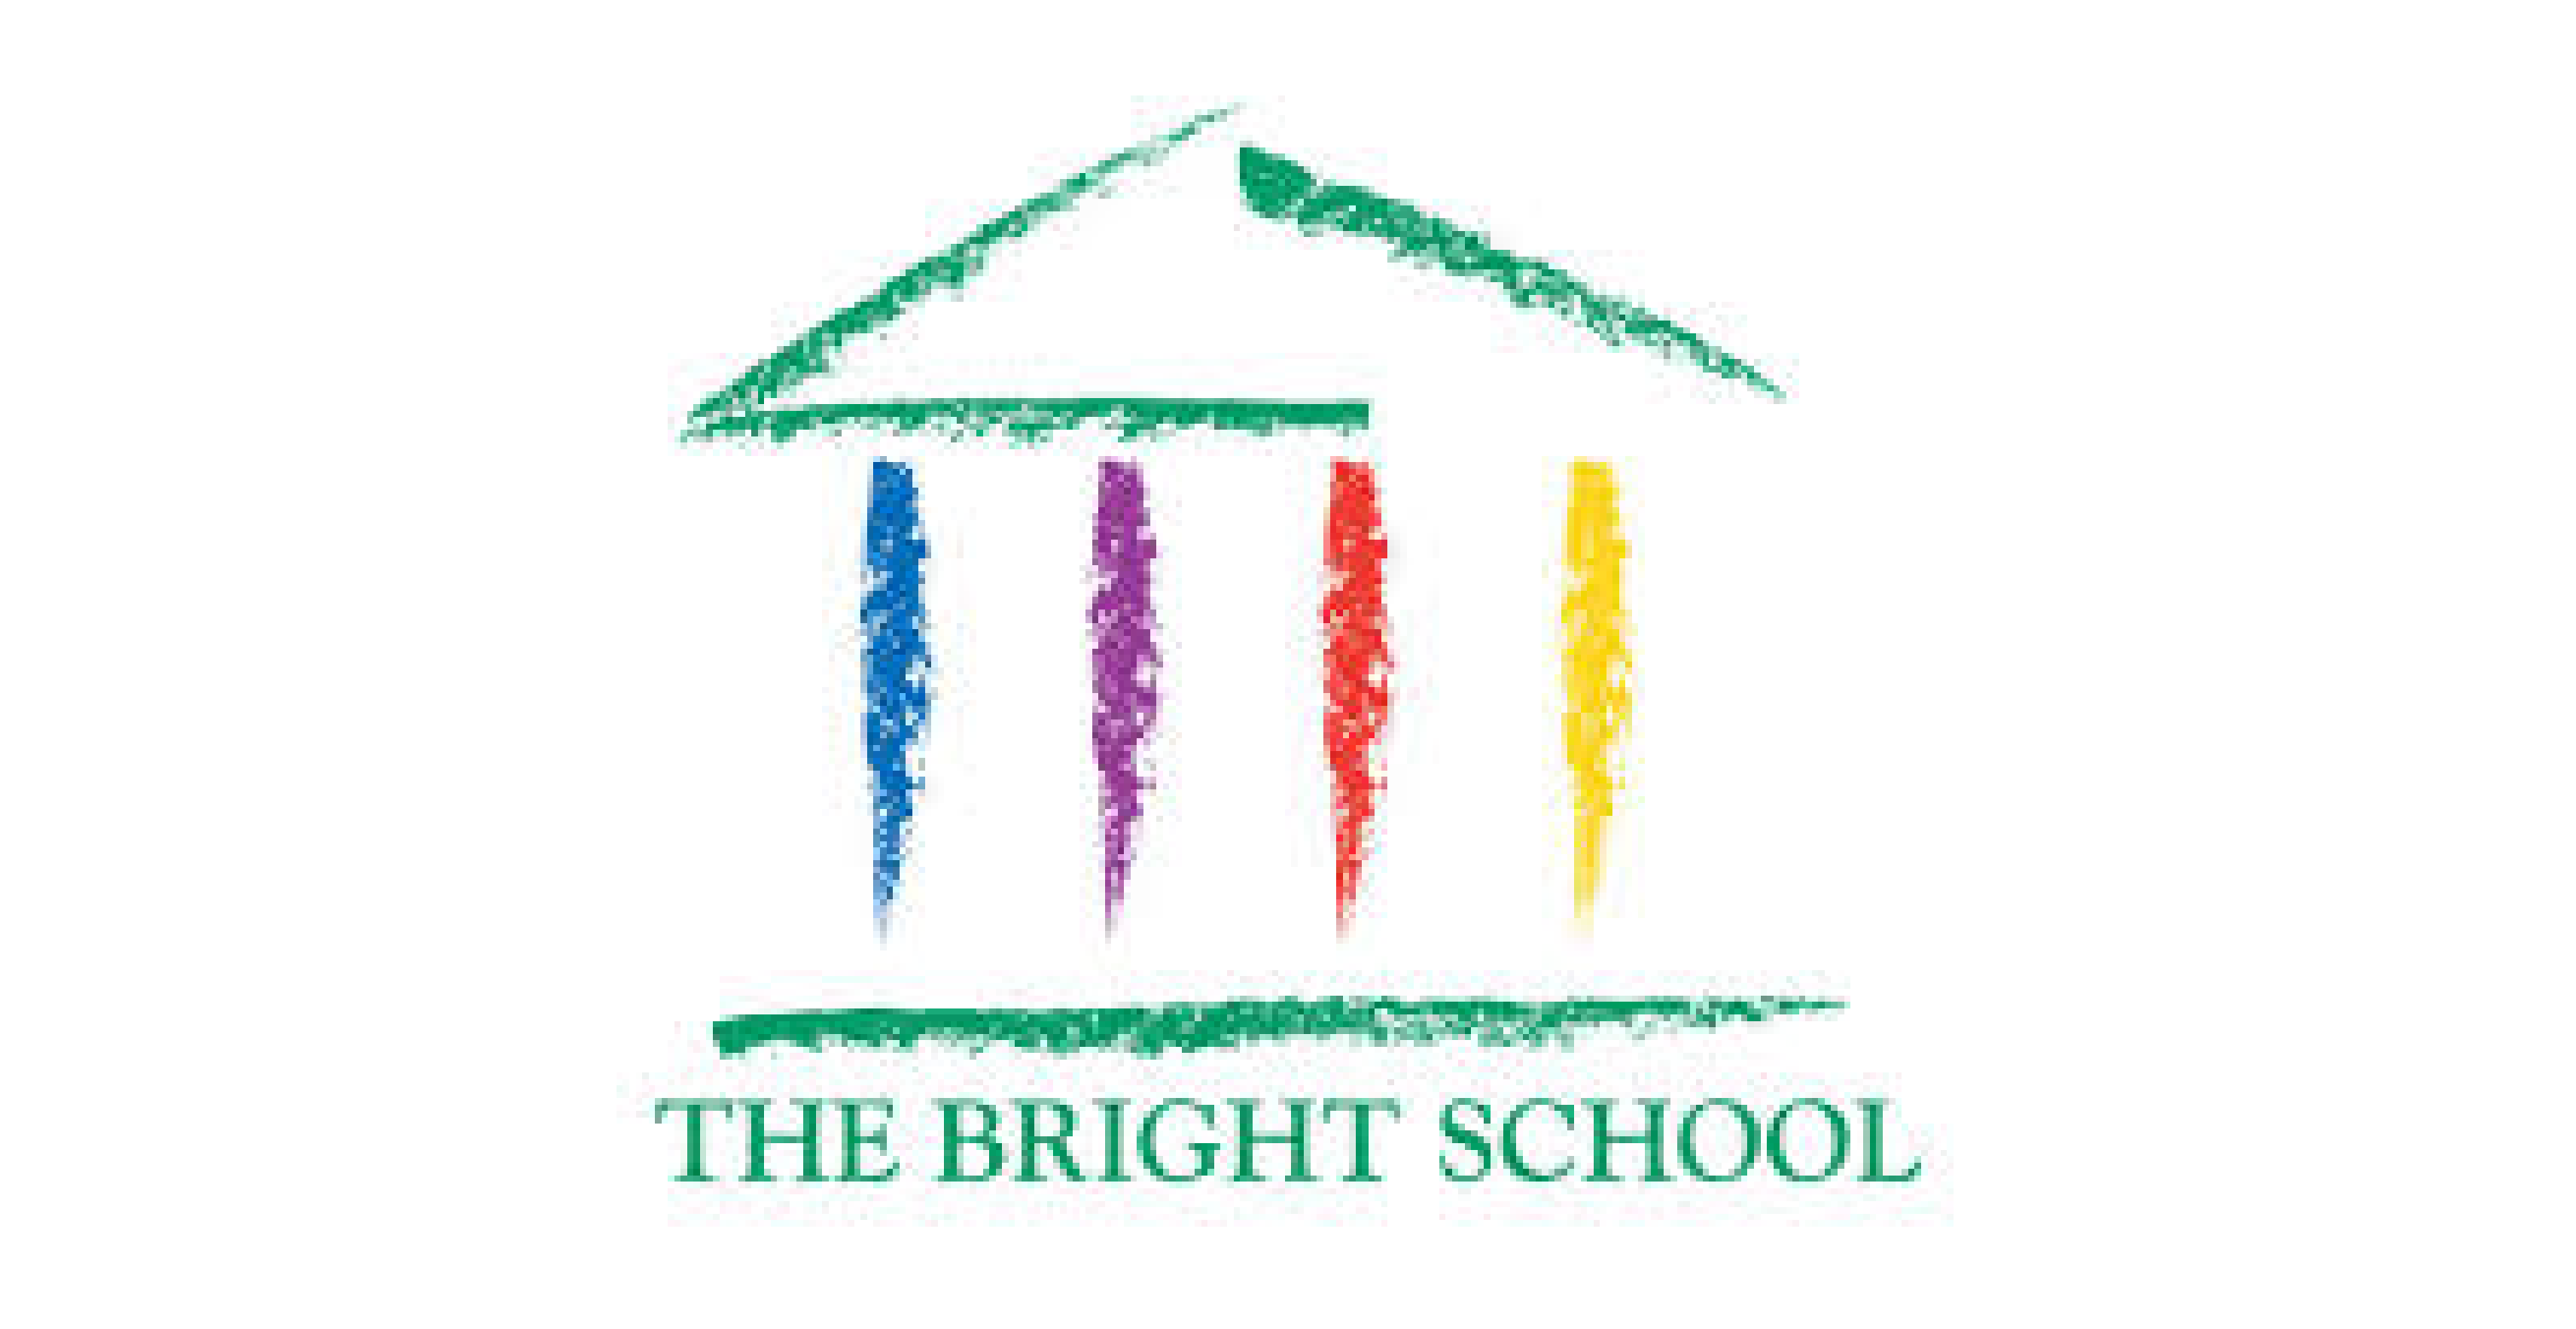 The Bright School